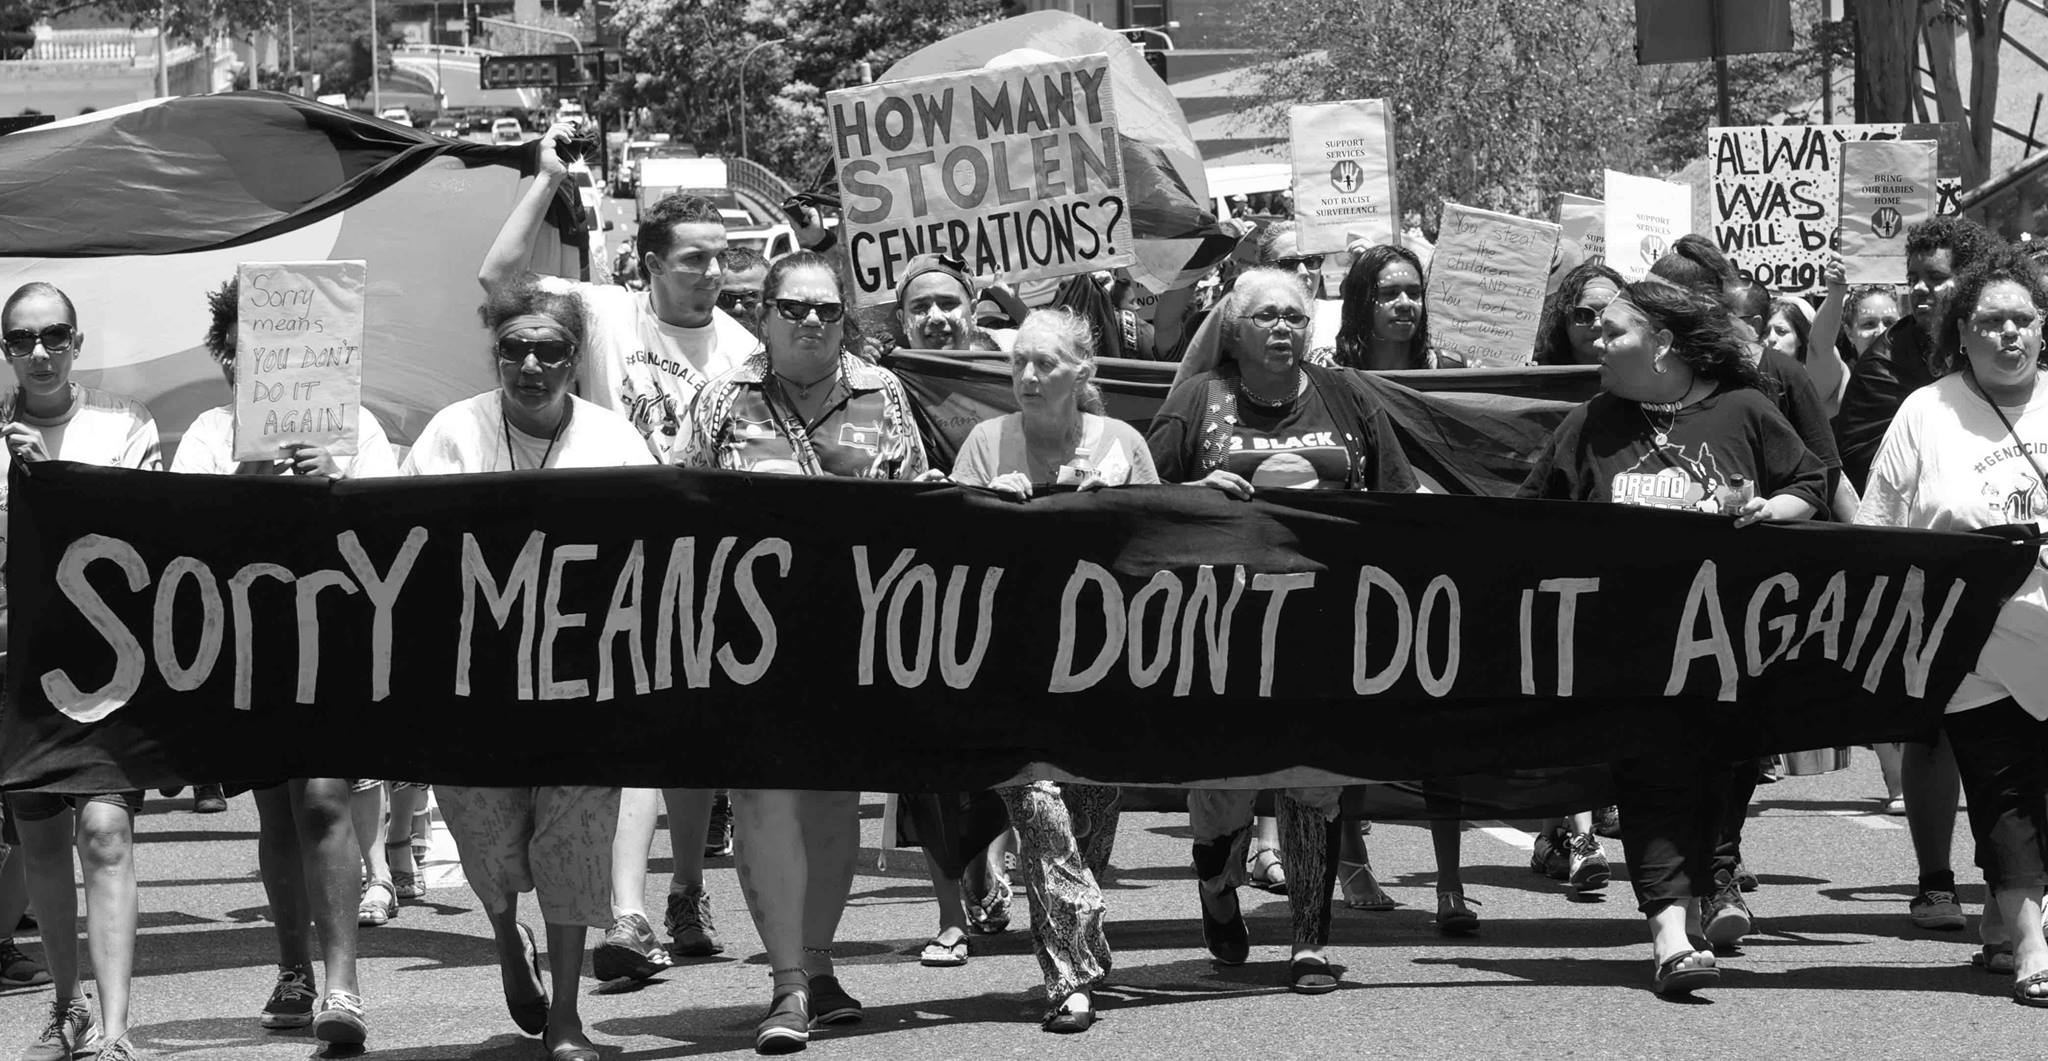 Protest To Stop Continuing Stolen Generations